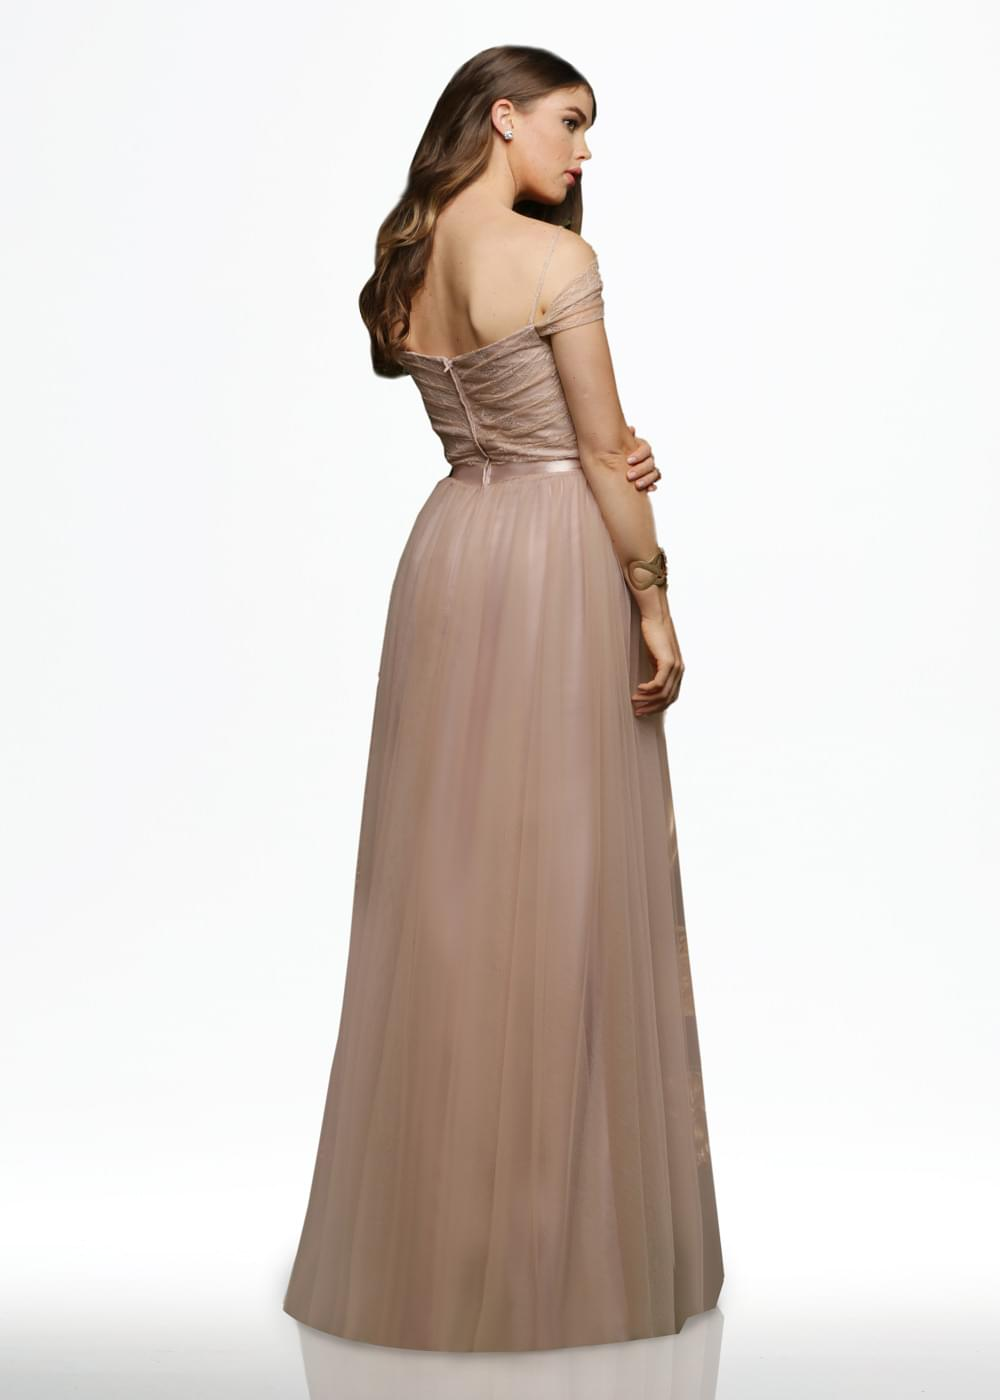 80073 Dresses with Straps By Ashdon